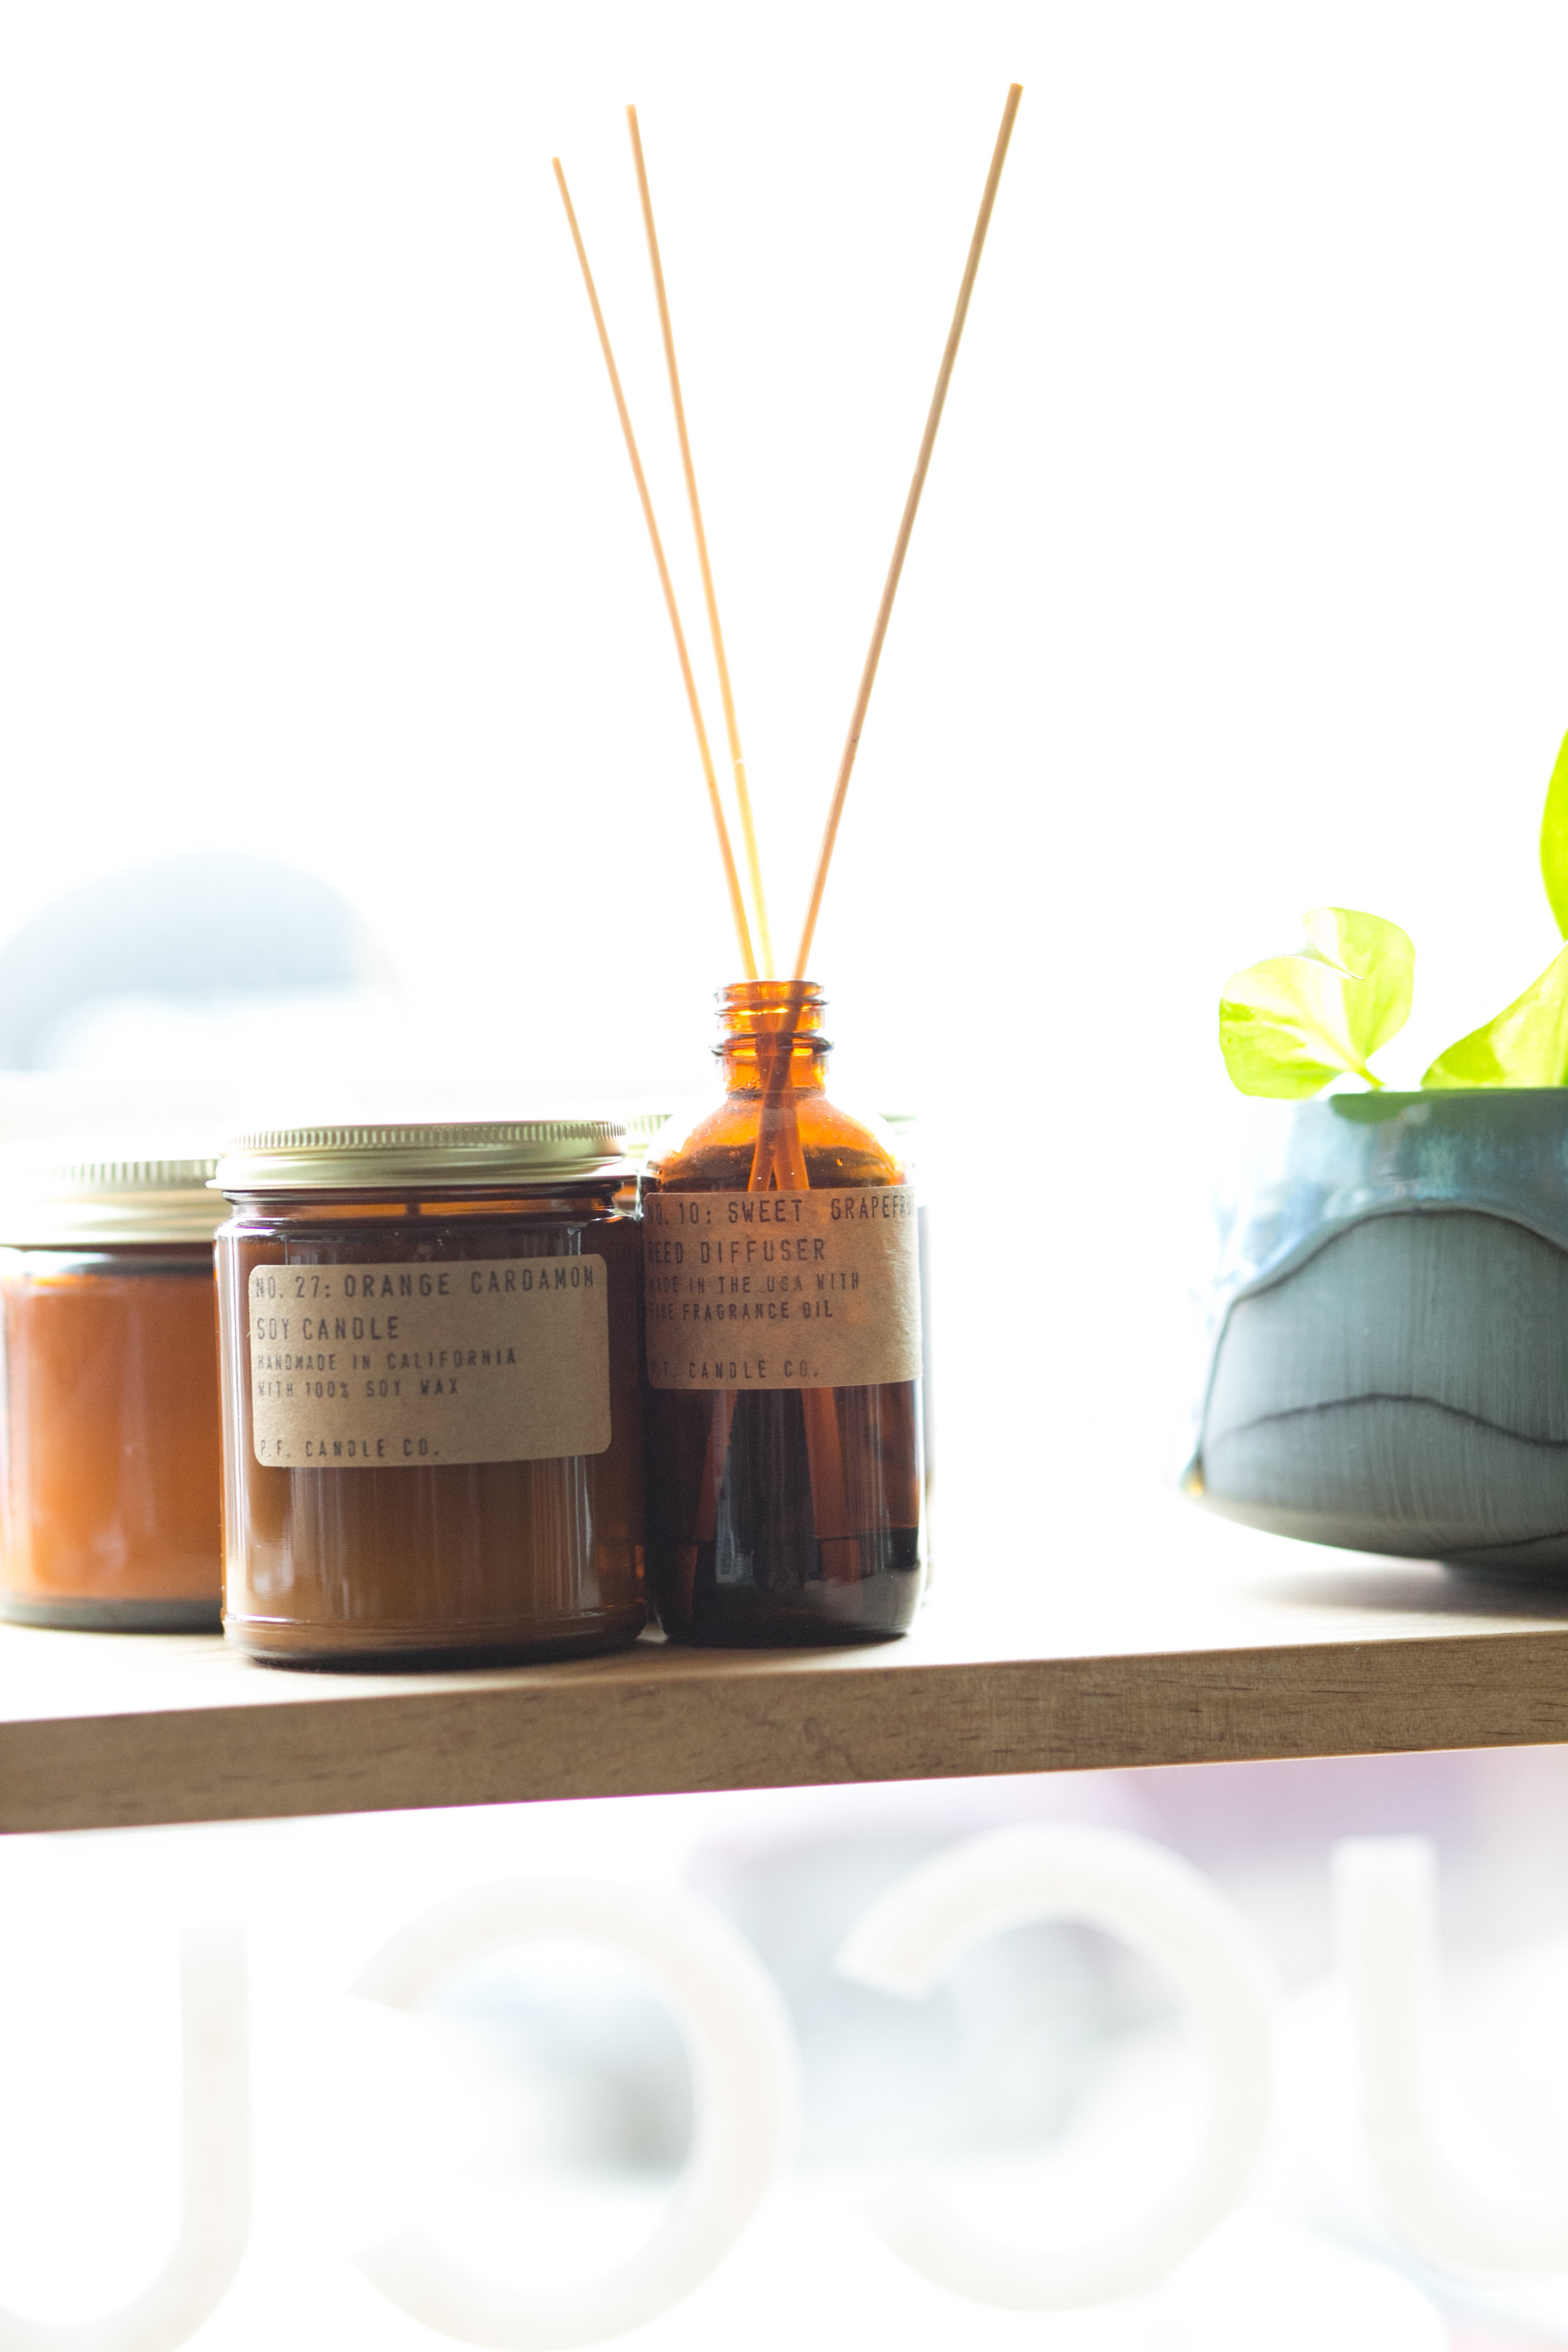 Hand poured soy candles from P.F. Candle Company make a great gift idea for those moms who are less plant inclined.